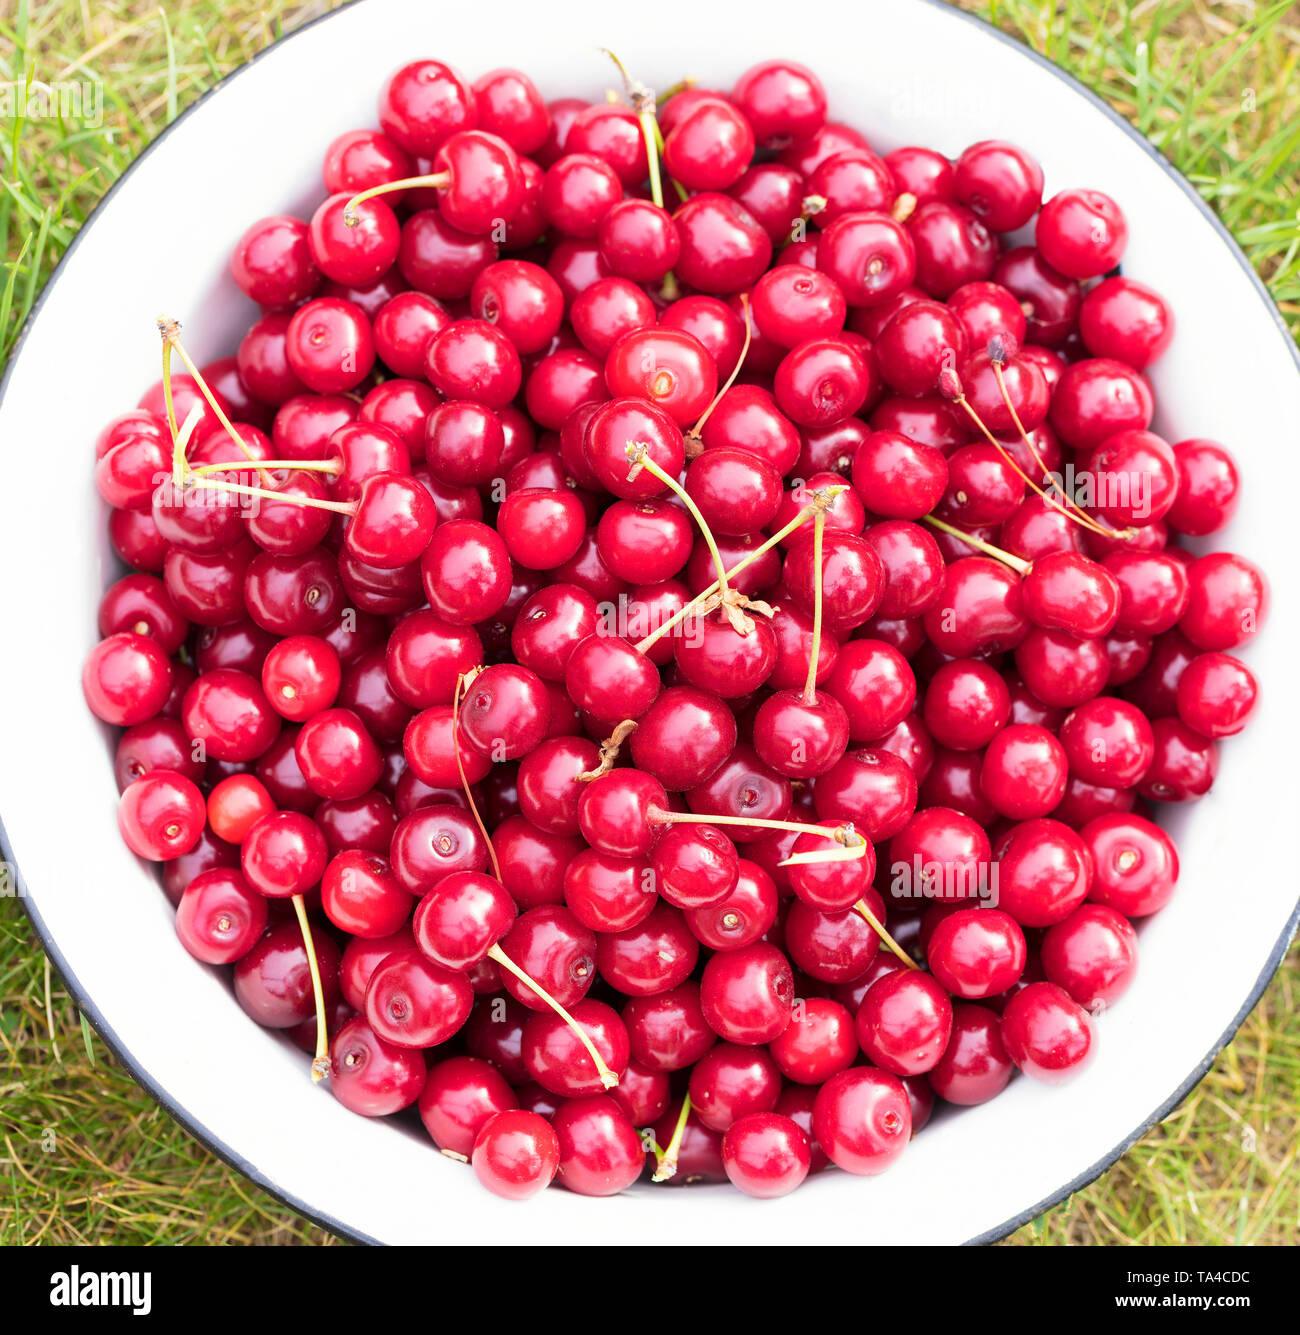 On a white clean plate lies the harvest of red ripe cherries. Top view of a close-up. - Stock Image